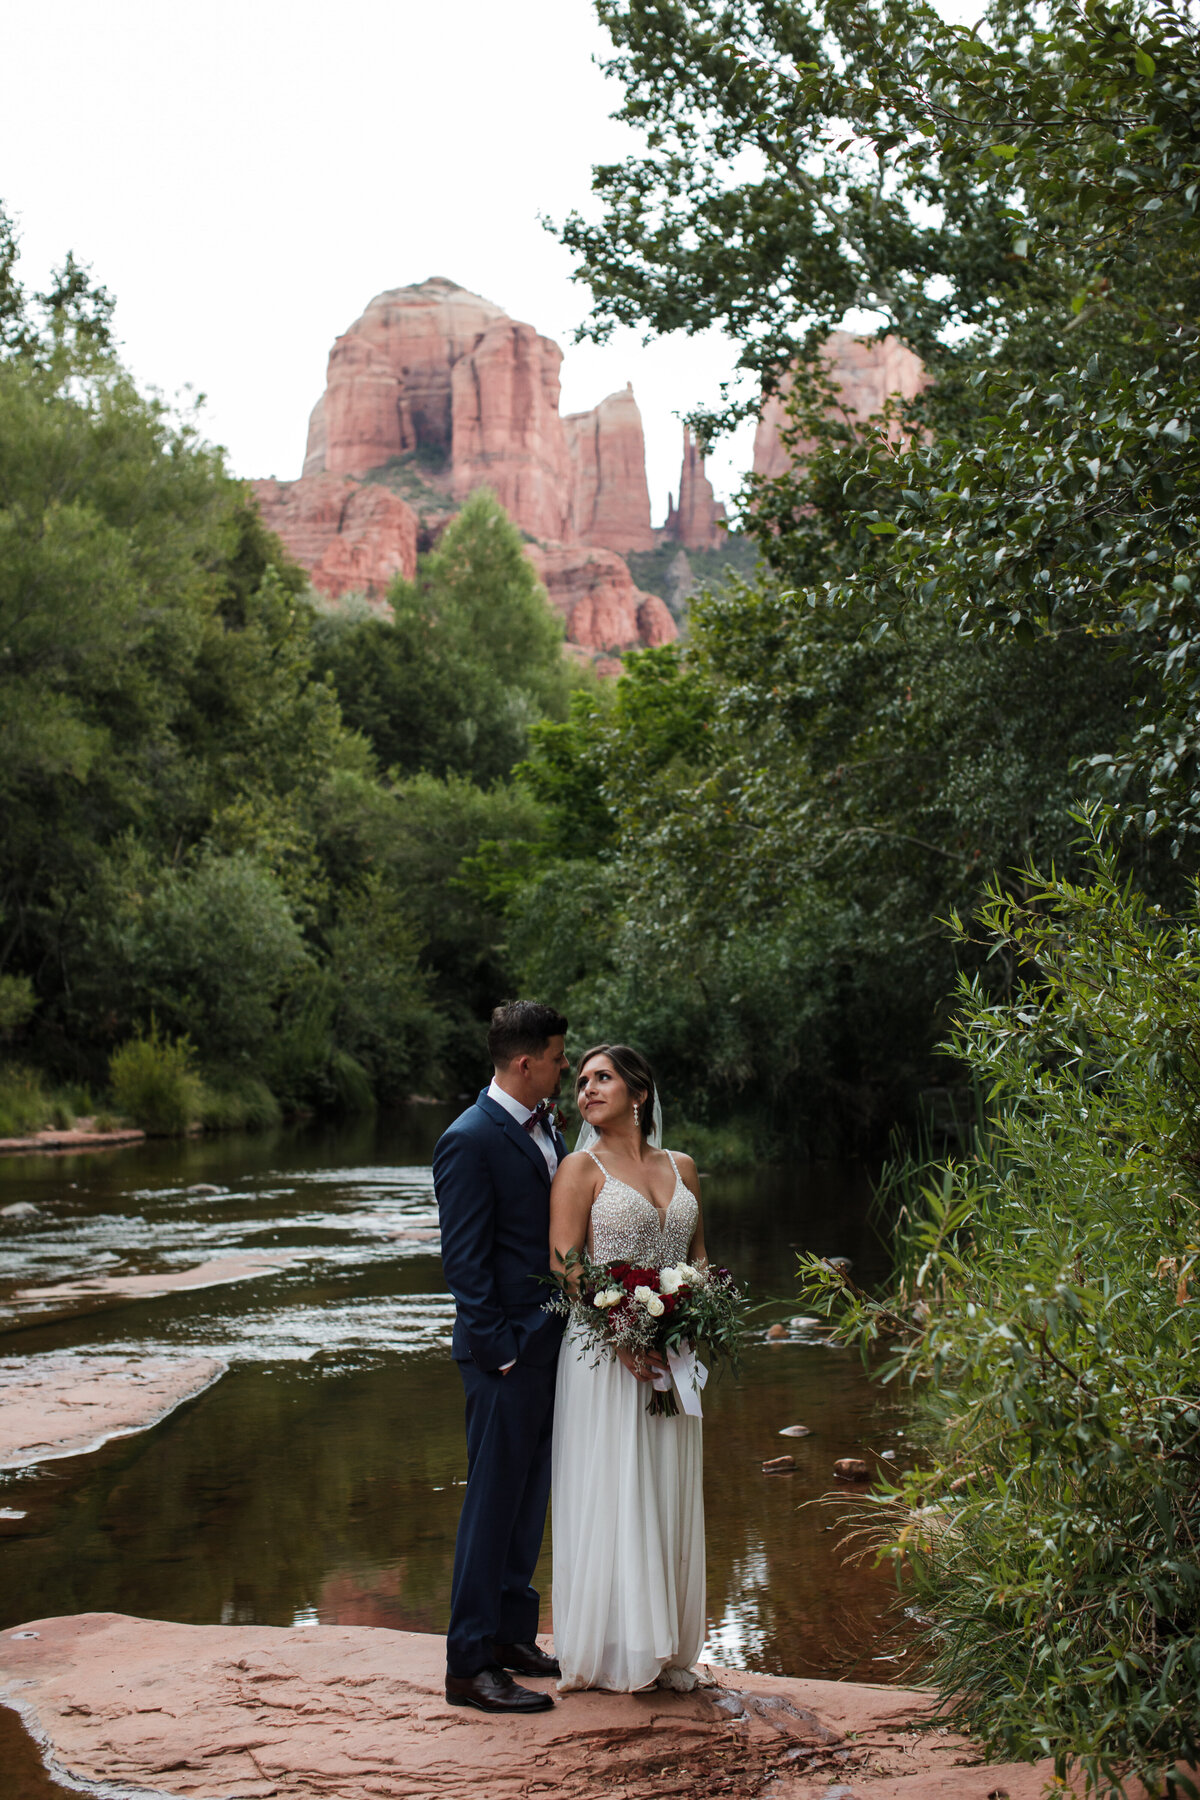 Sedona-Arizona-Elopement-Cathedral-Rock-Destination-Wedding-Photographer-124